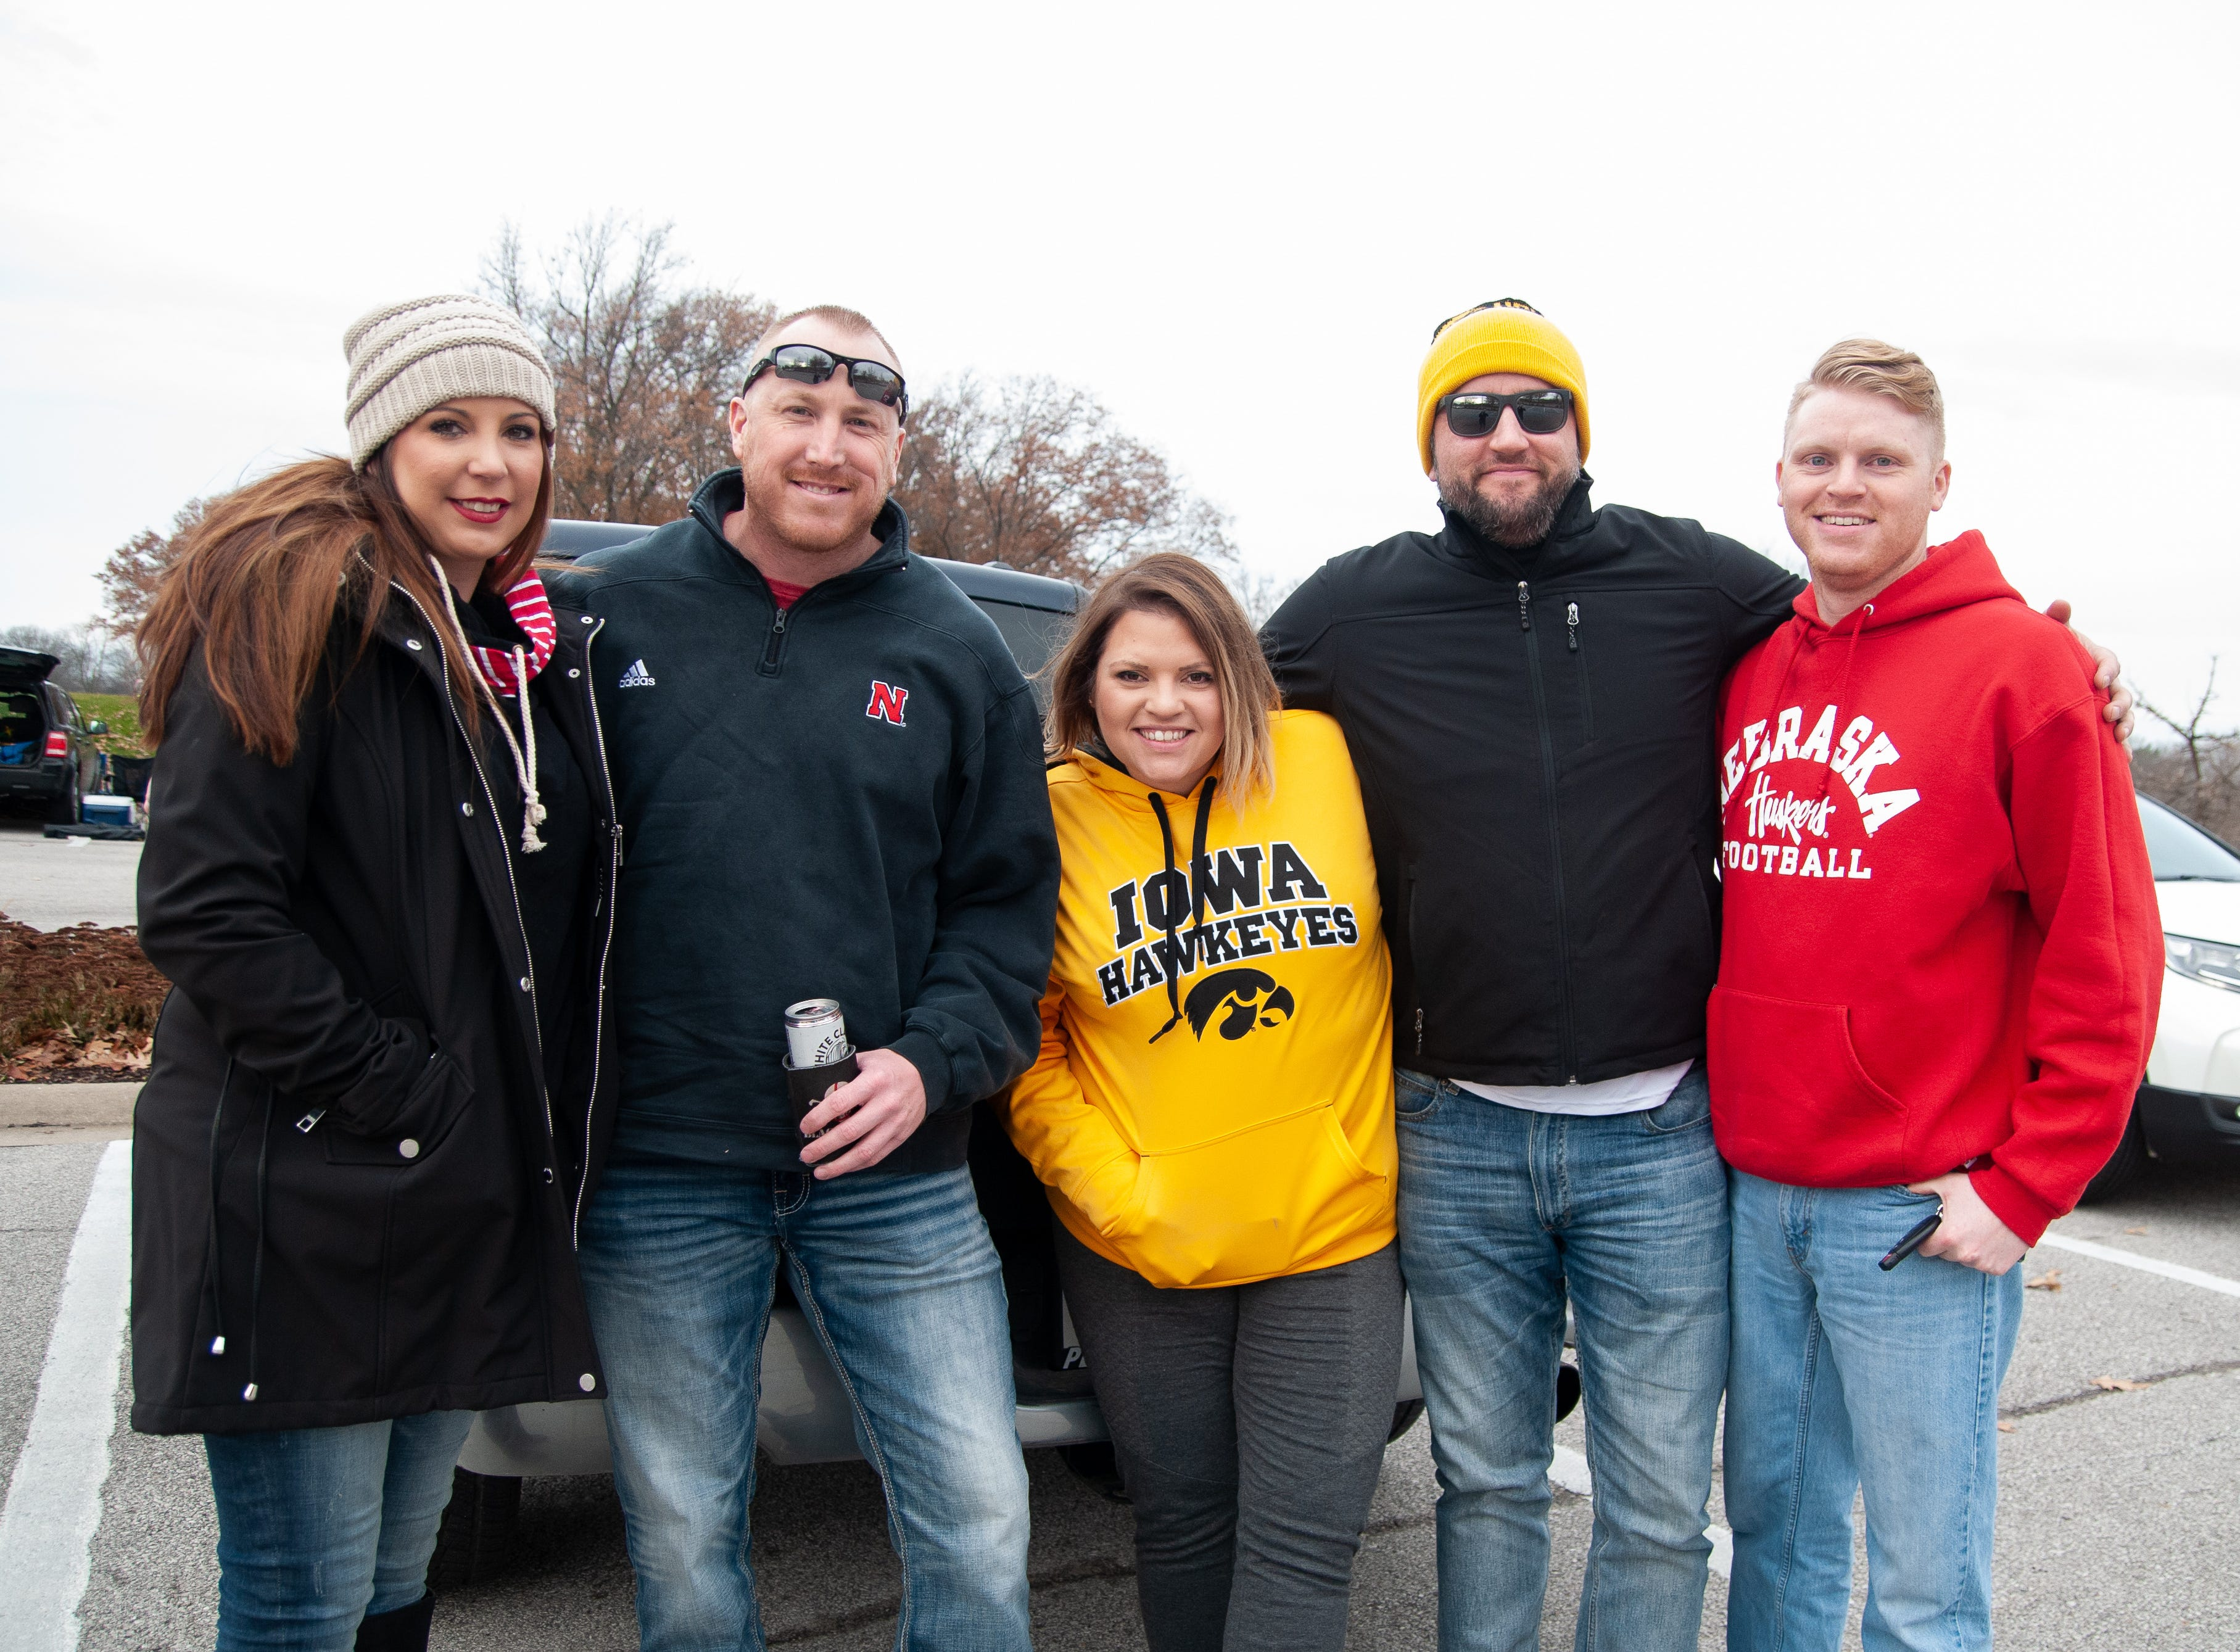 The Brownlee Tailgate, of Council Bluffs and Omaha, Friday, Nov. 23, 2018, while tailgating before the Iowa game against Nebraska in Iowa City.